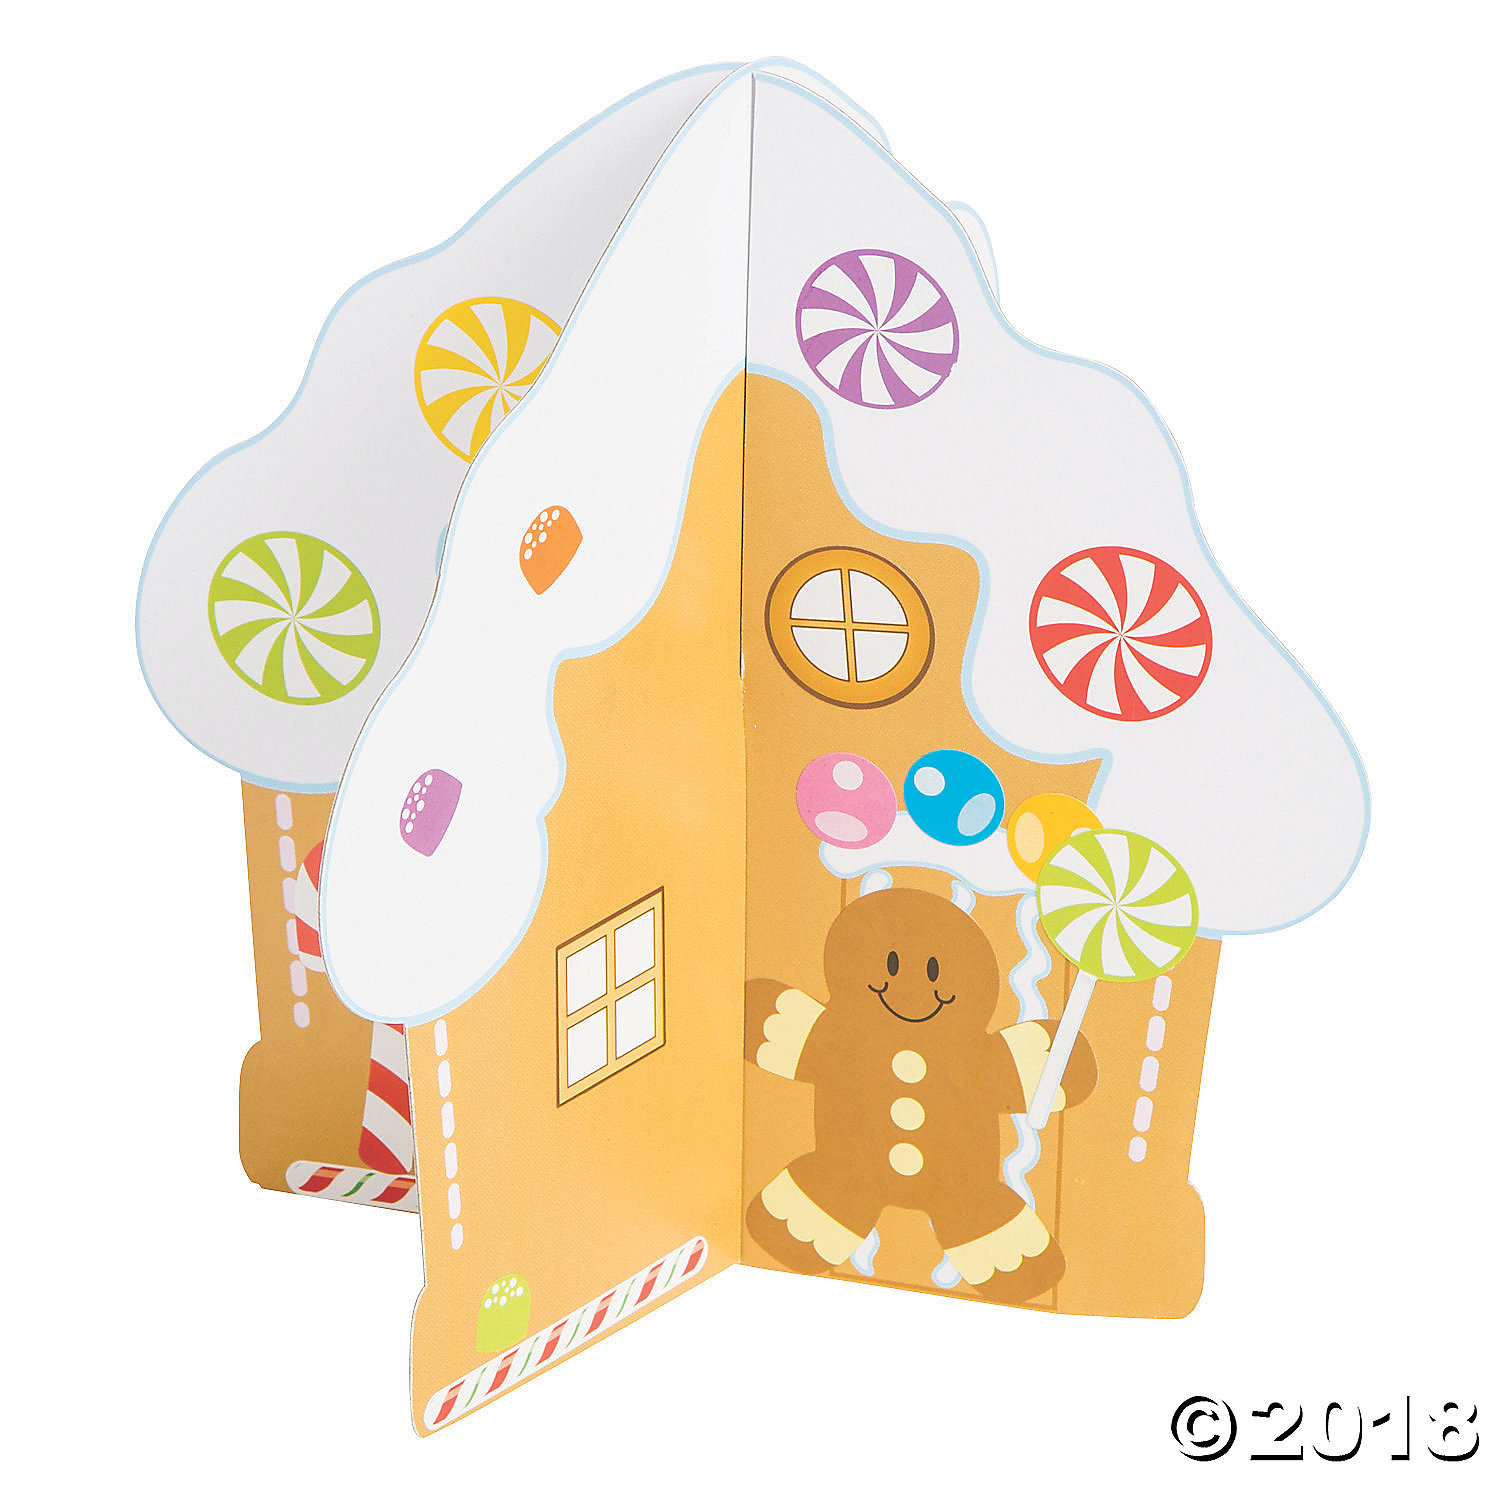 Miraculous Christmas Craft Kits Over 1000 Party Supplies Canada Download Free Architecture Designs Rallybritishbridgeorg